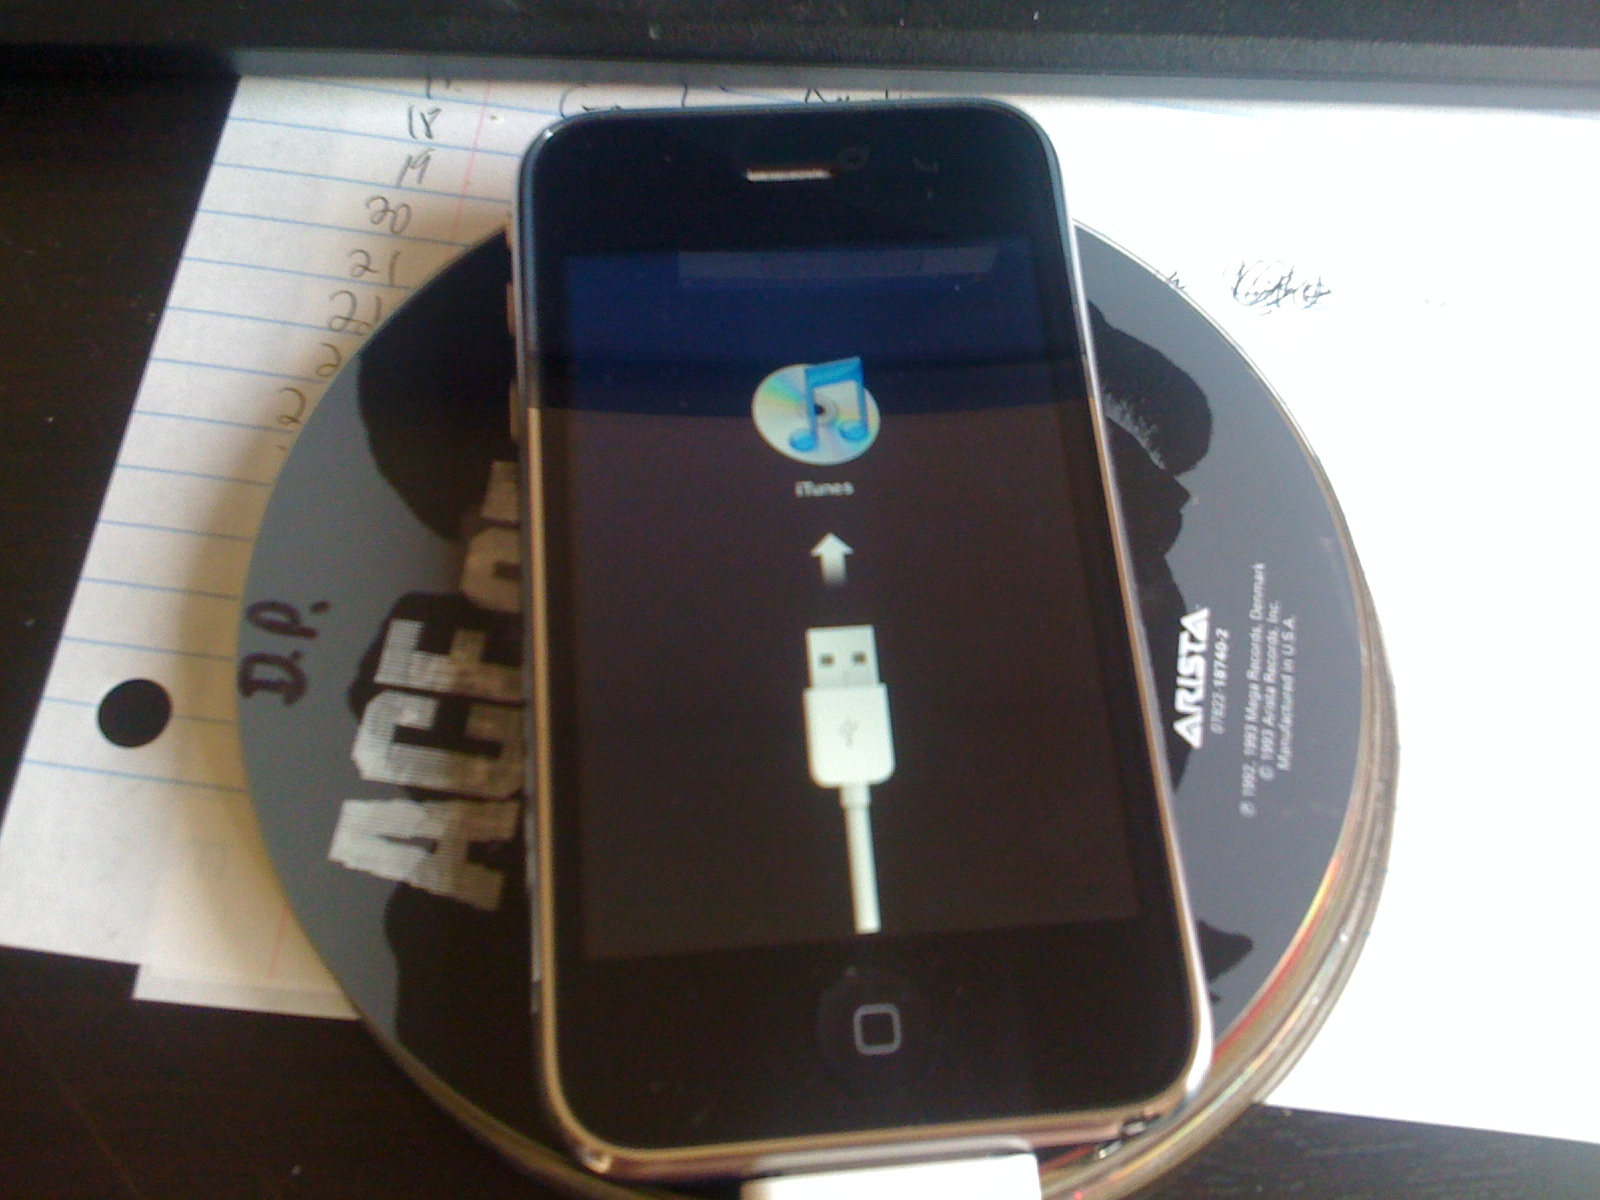 Jailbreak iPhone 3GS With purplera1n [Windows] *UPDATED*